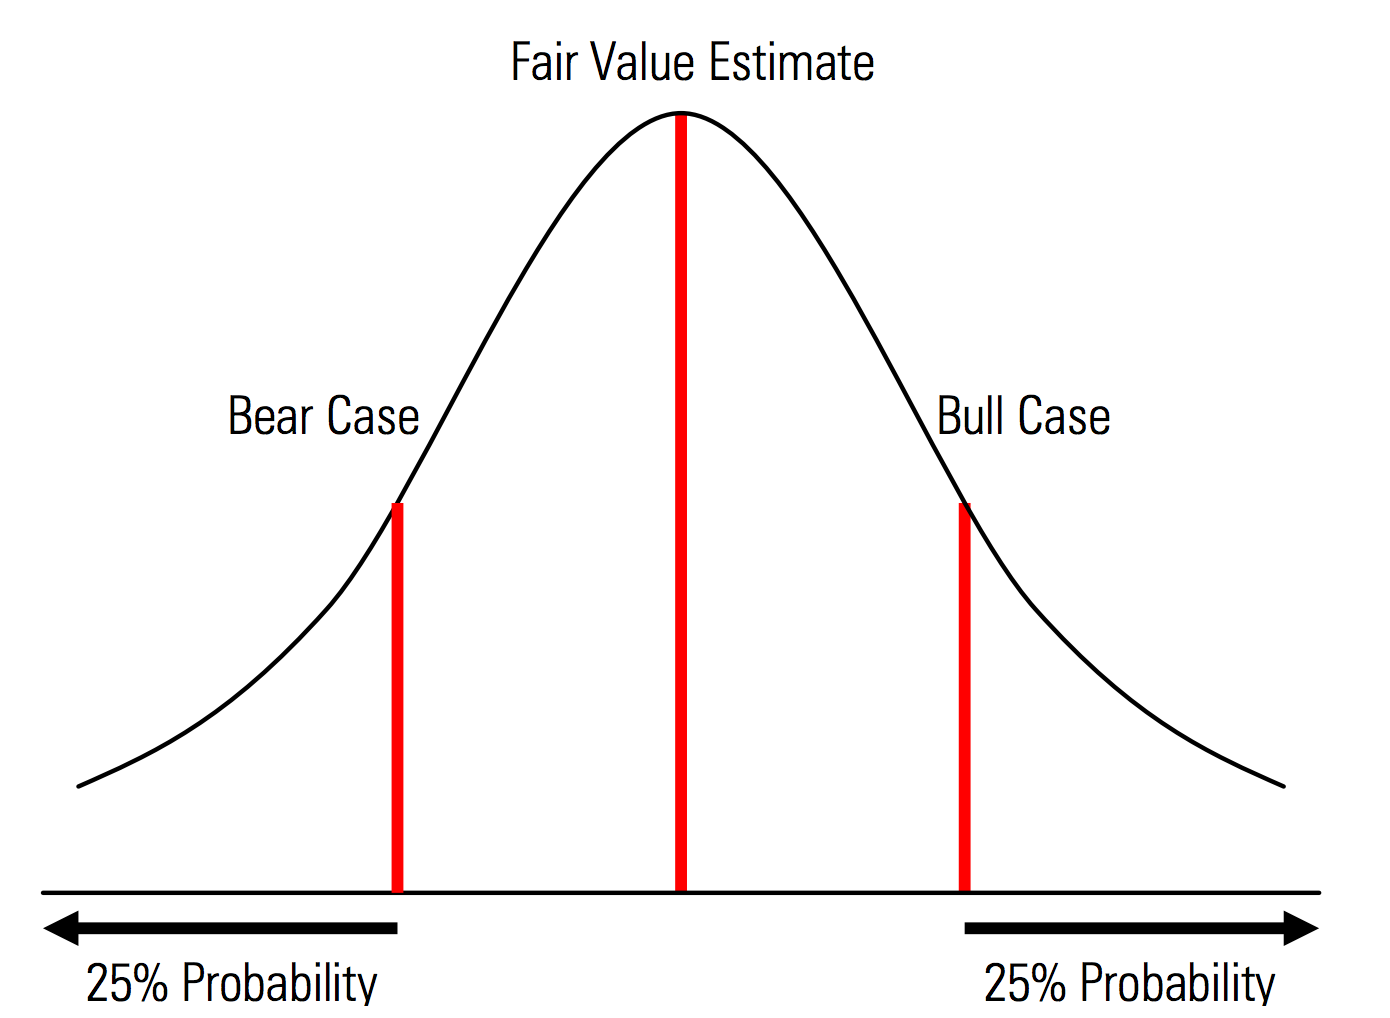 Example probability distribution from the Morningstar Valuation Handbook, showing relative probability of three different forecast scenarios.